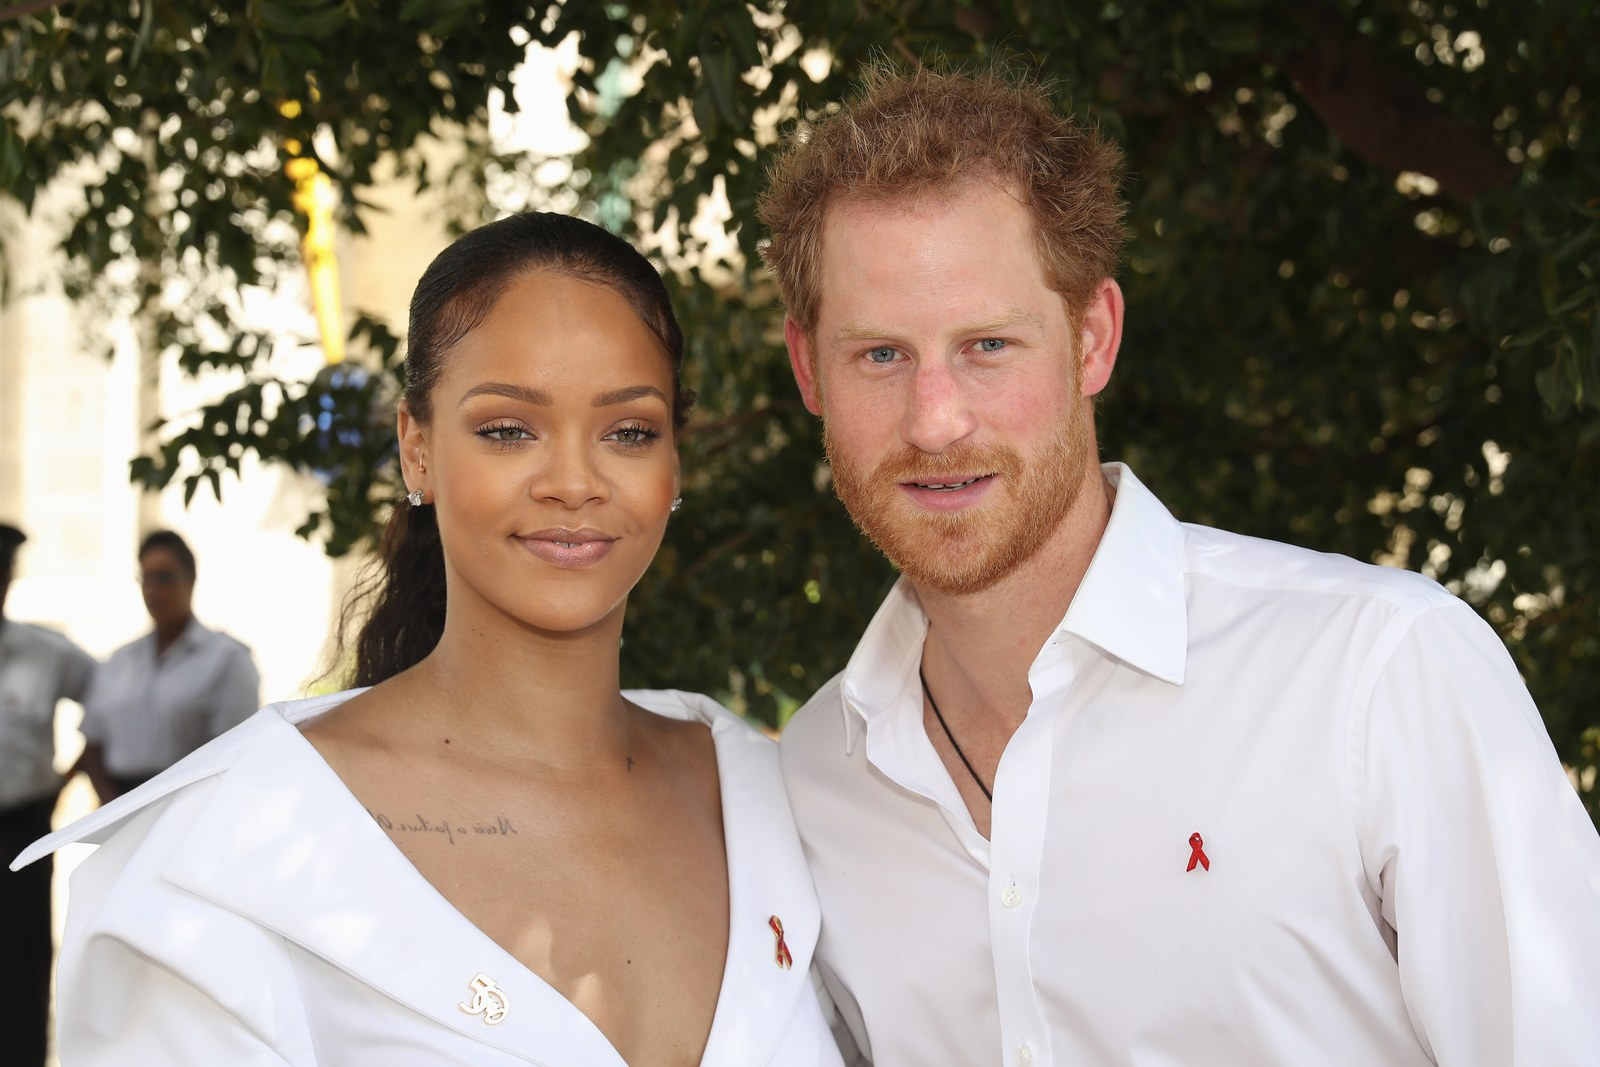 Rihanna and Prince Harry at an engagement together in December 2016.